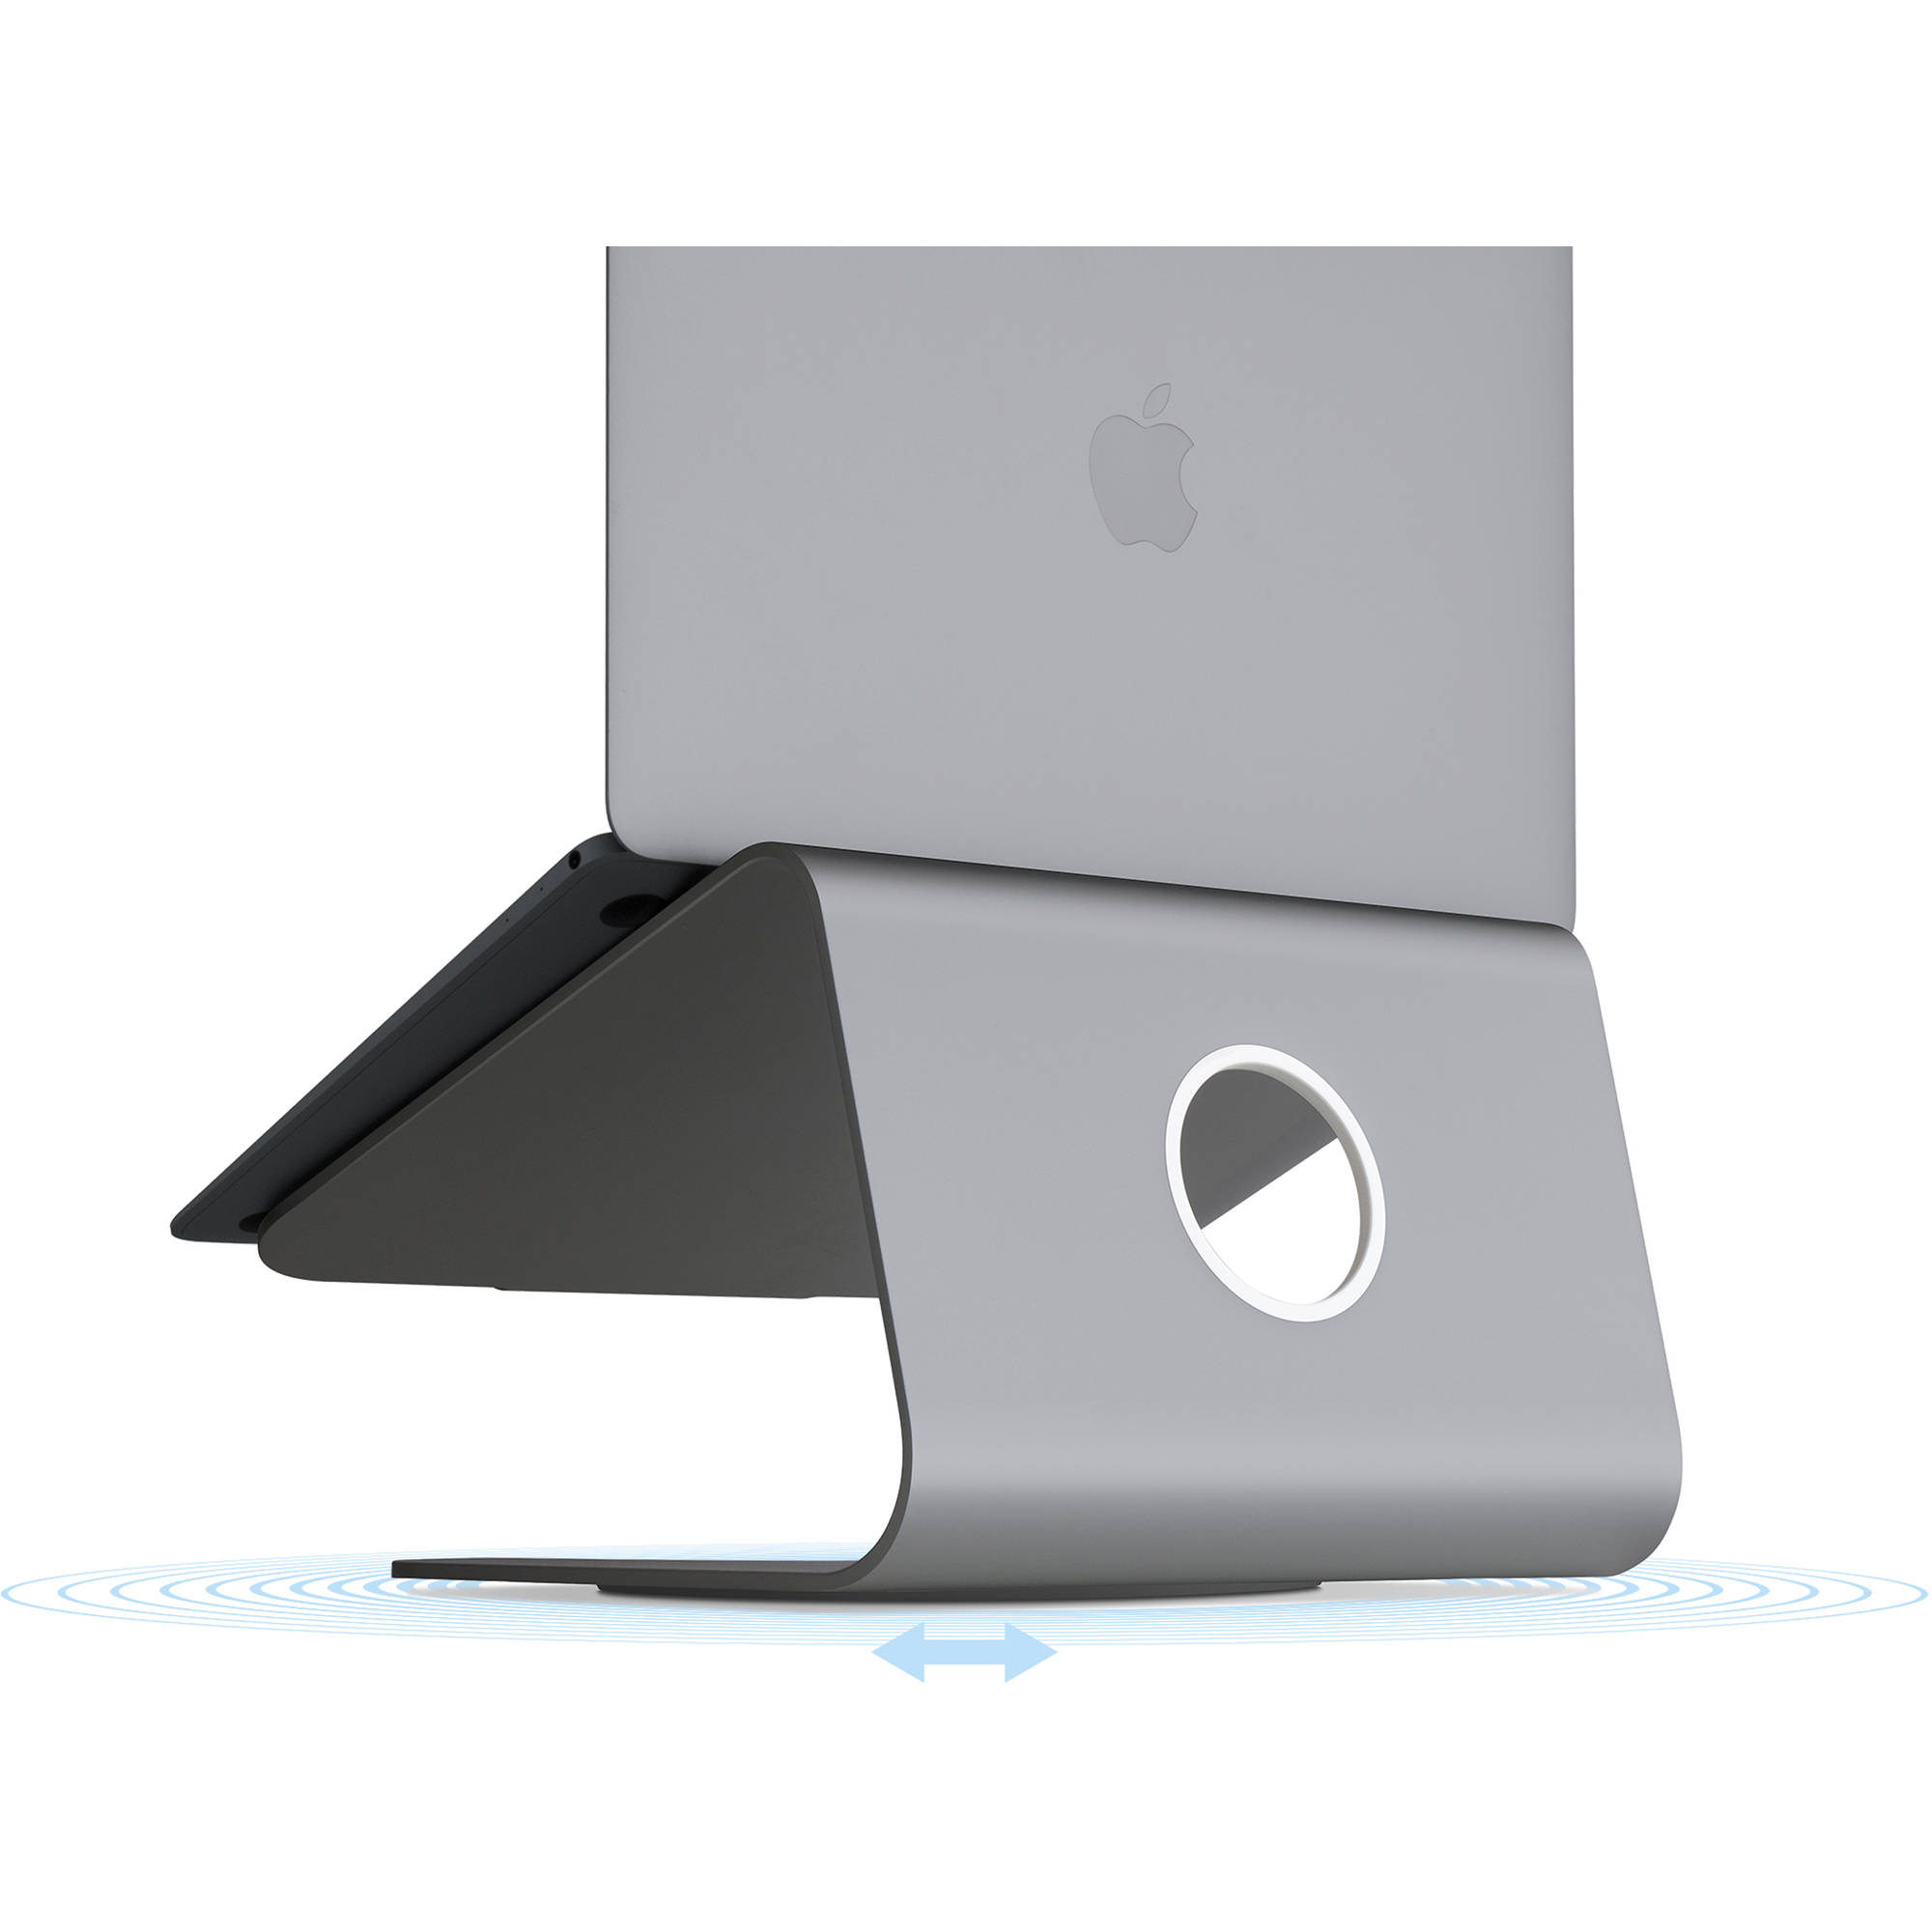 mStand360 Laptop Stand with Swivel Base 10073 Gold Audio & Video ...